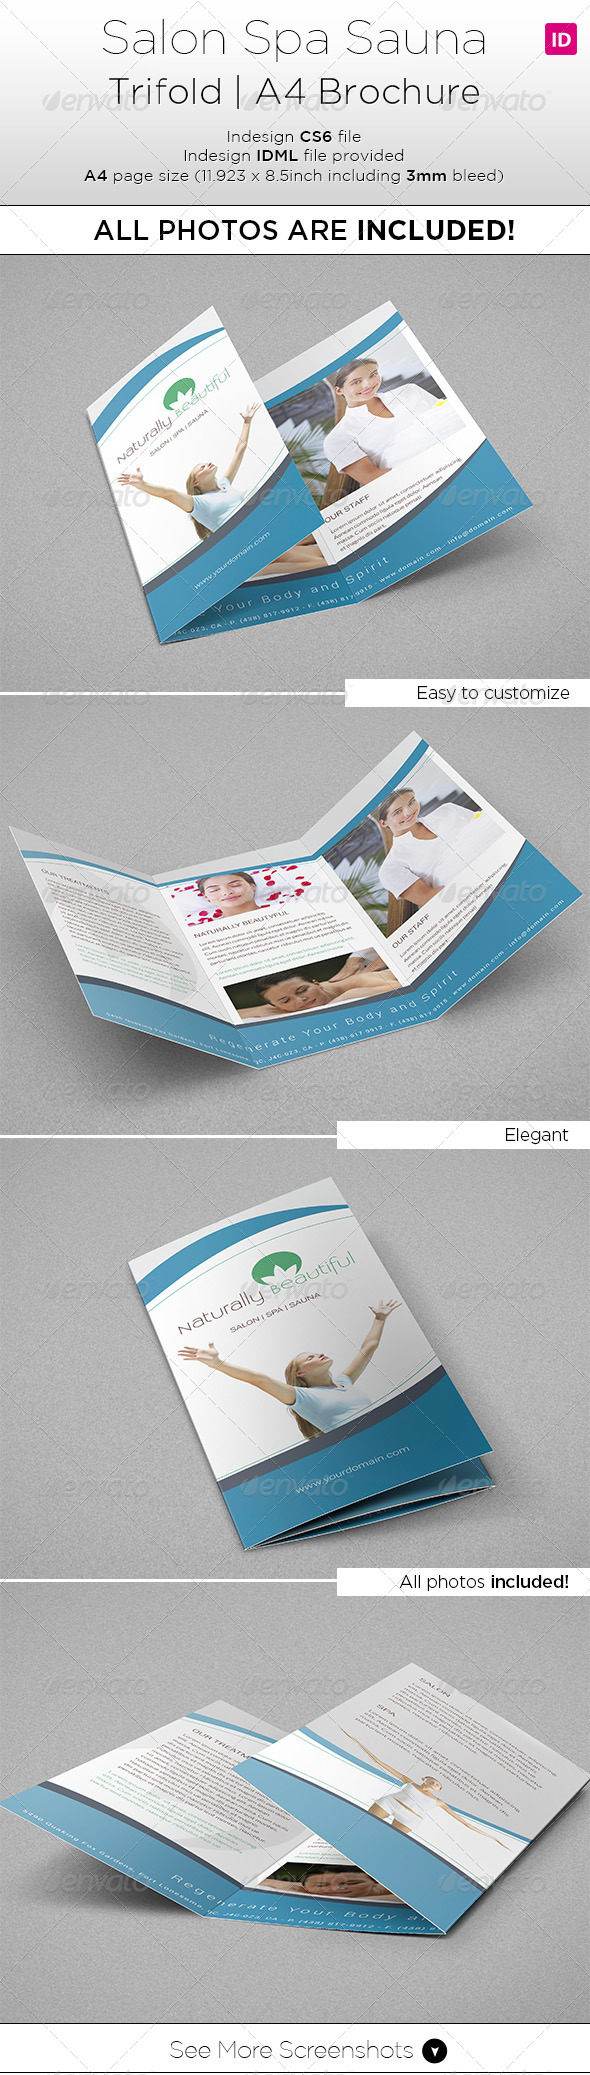 GraphicRiver Salon Spa Trifold A4 Brochure All Photo Included 7889341